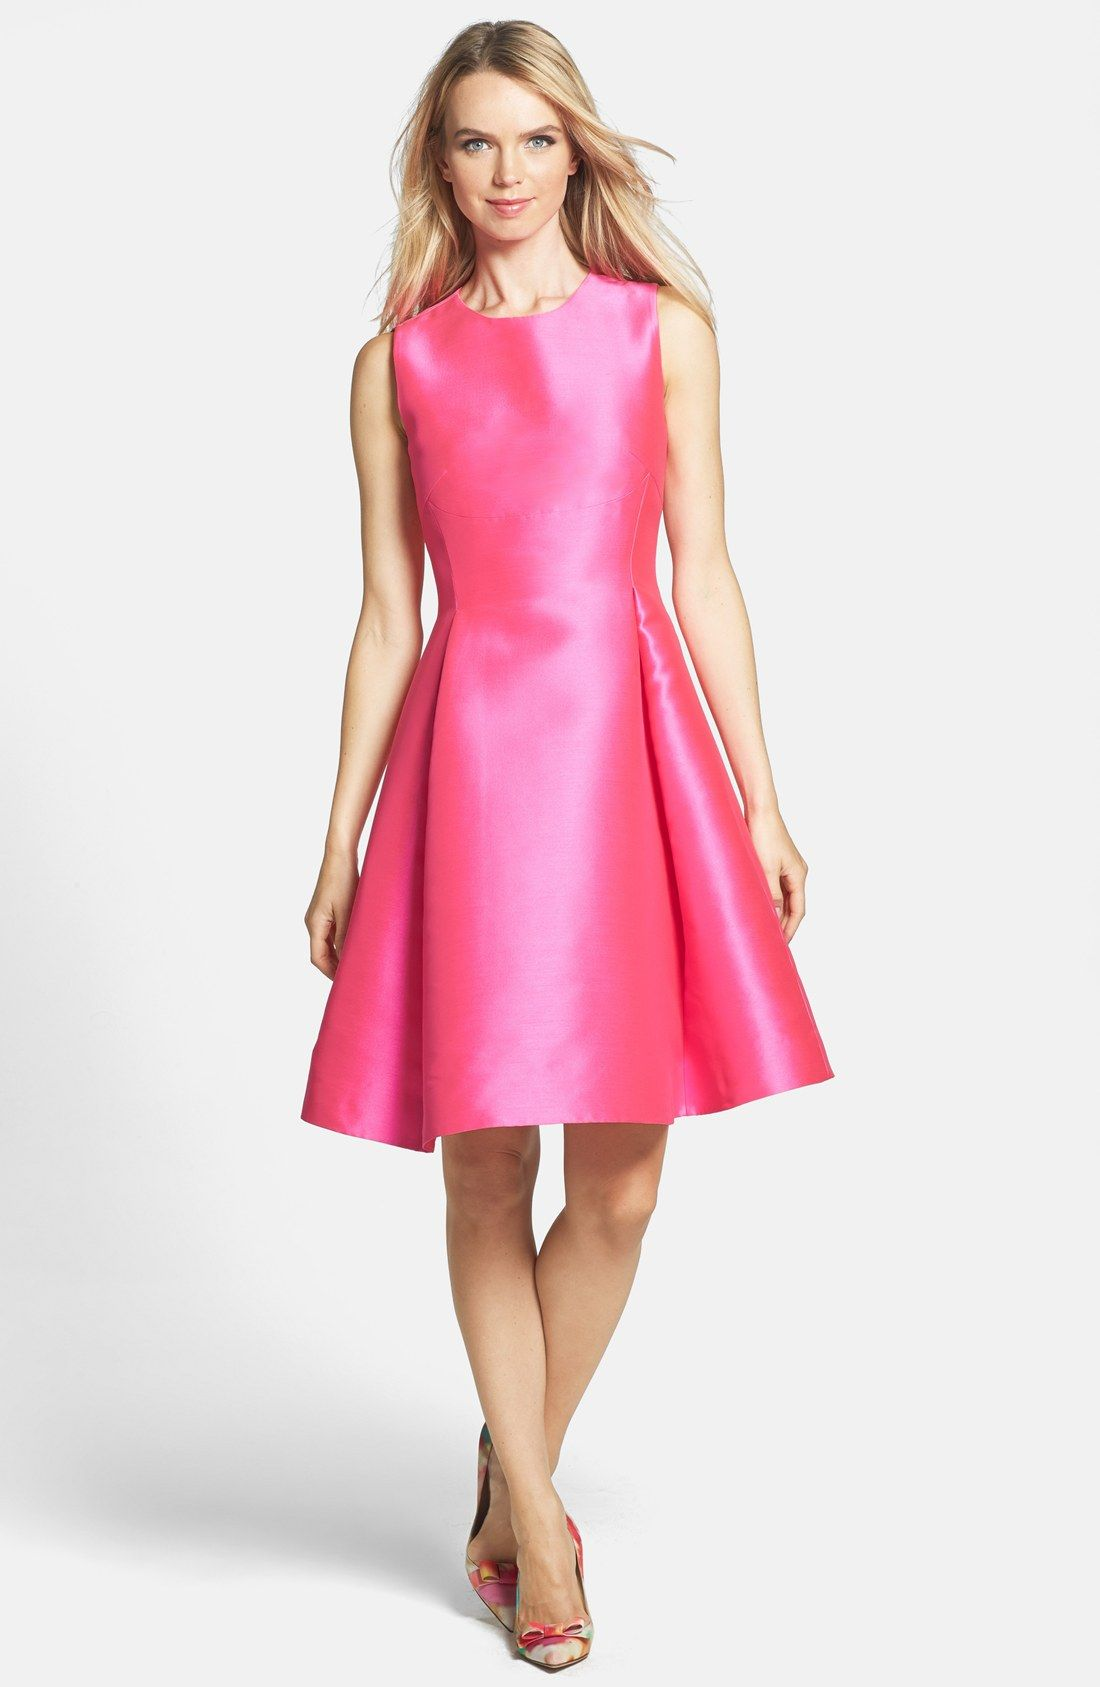 kate spade new york \'roset\' woven fit & flare dress. LOVE IT!!! | My ...